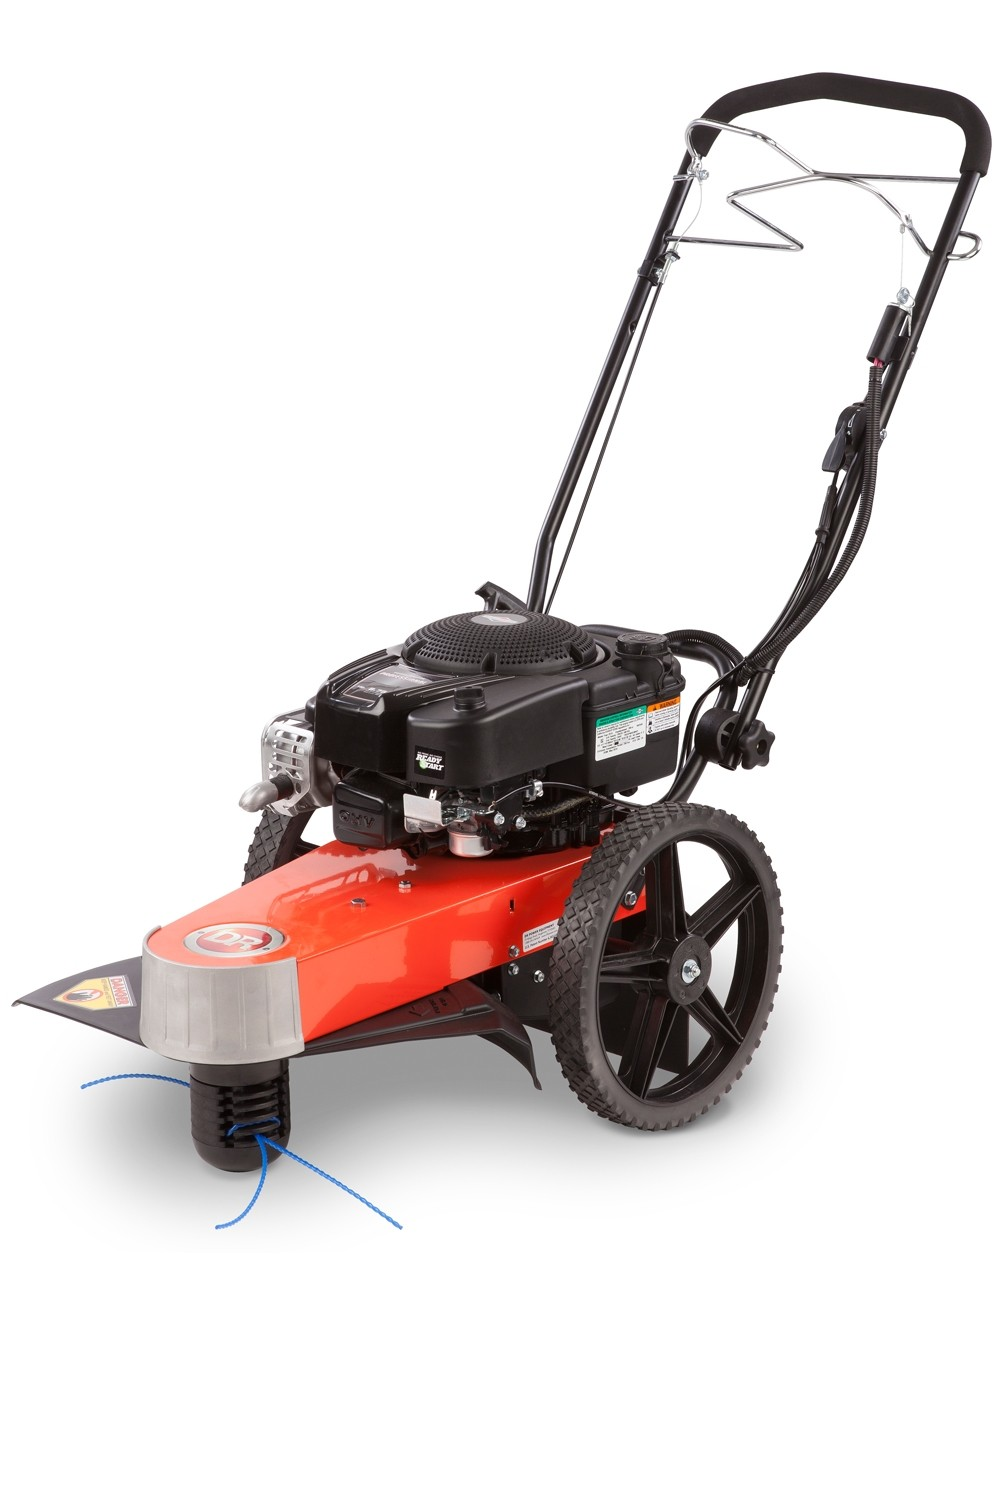 DR 8.75 SP PRO-XL Trimmer Mower